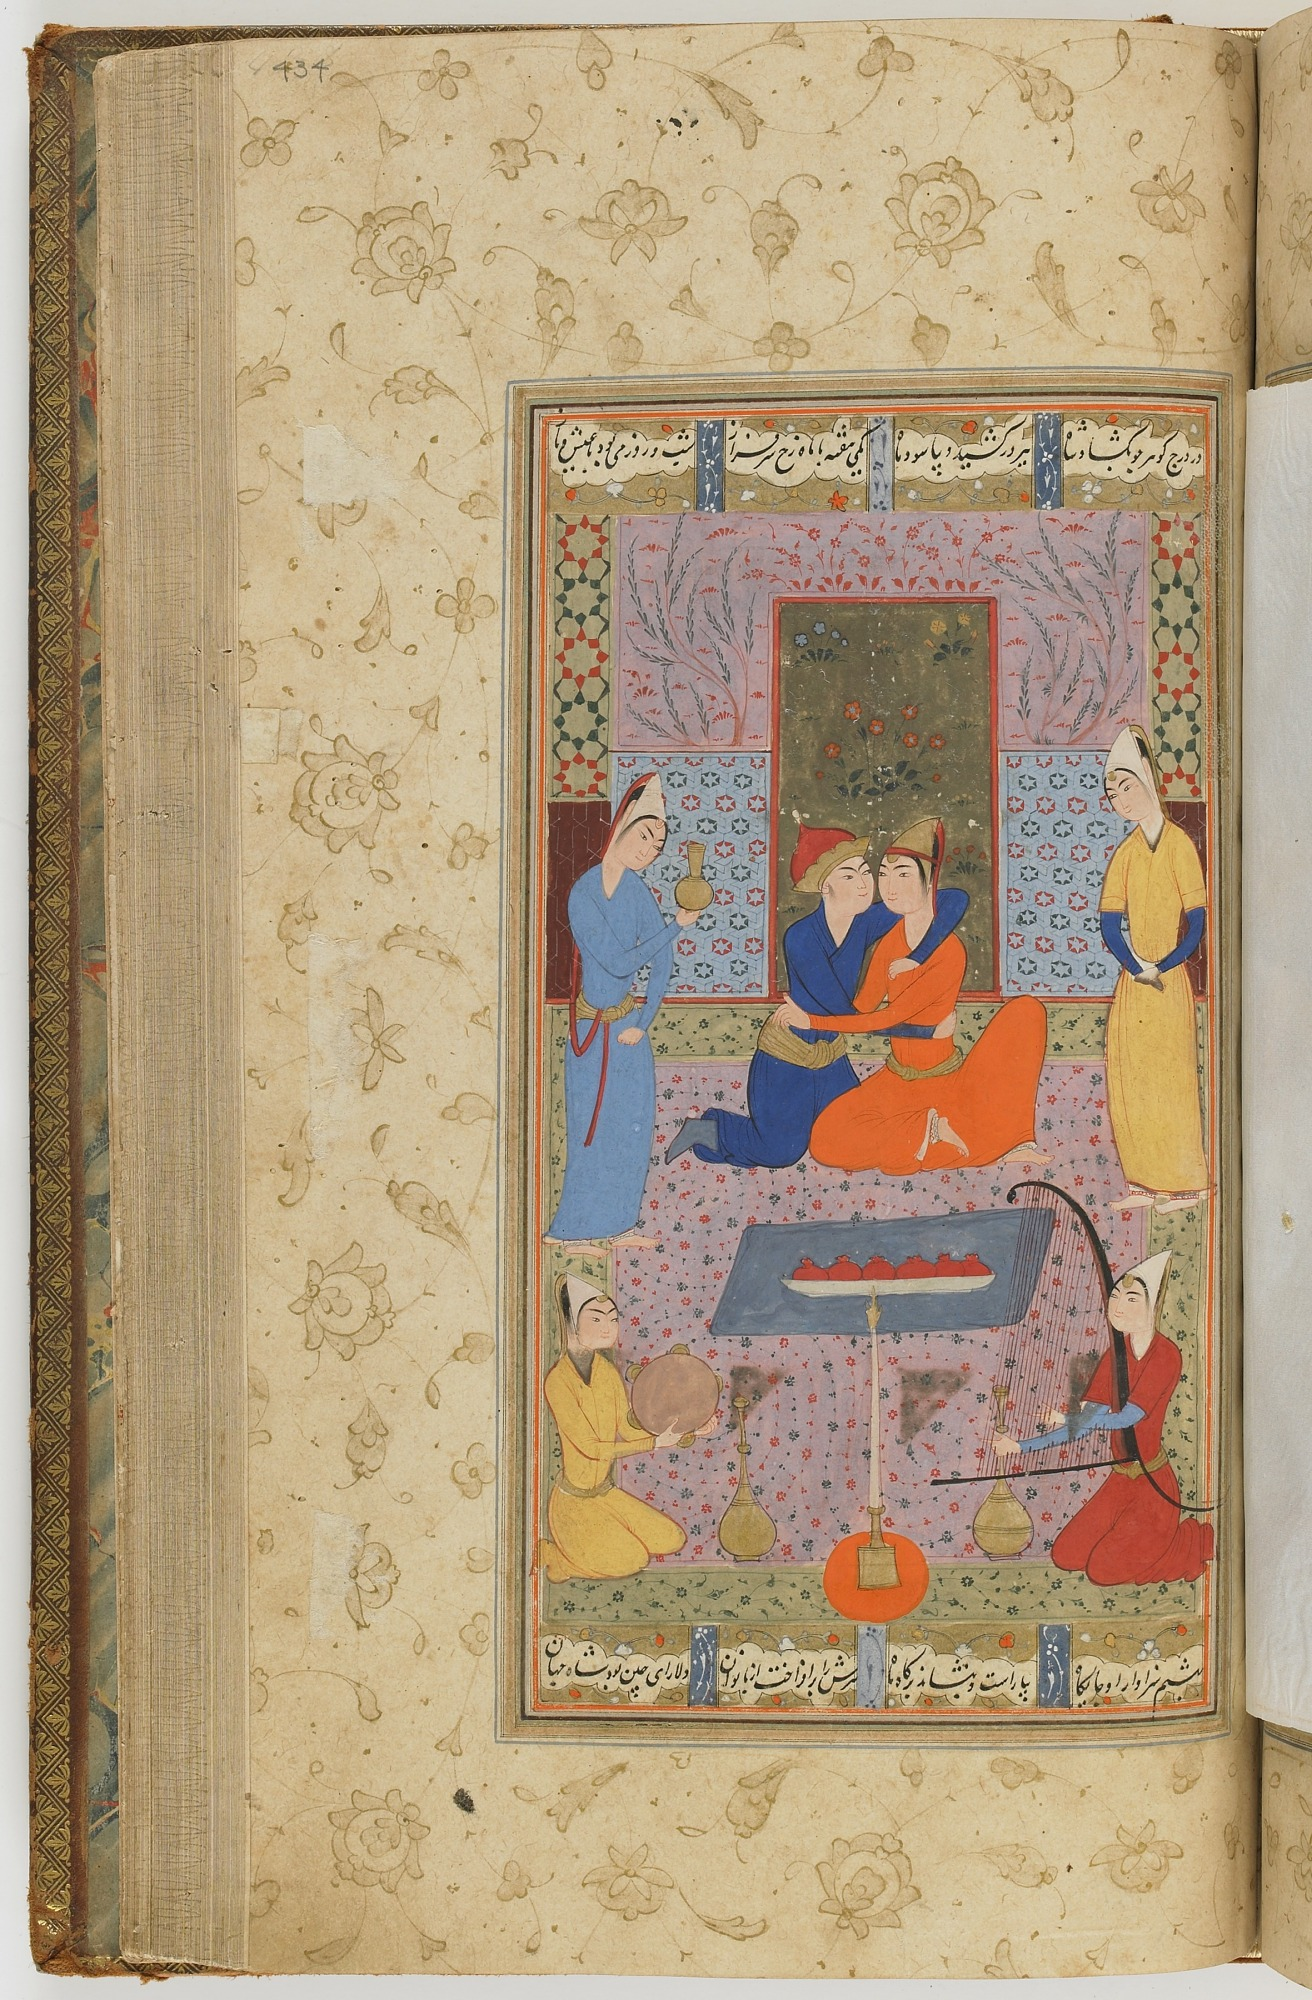 folio 434 recto: The Shahnama (Book of kings) by Firdausi (d. 1020)